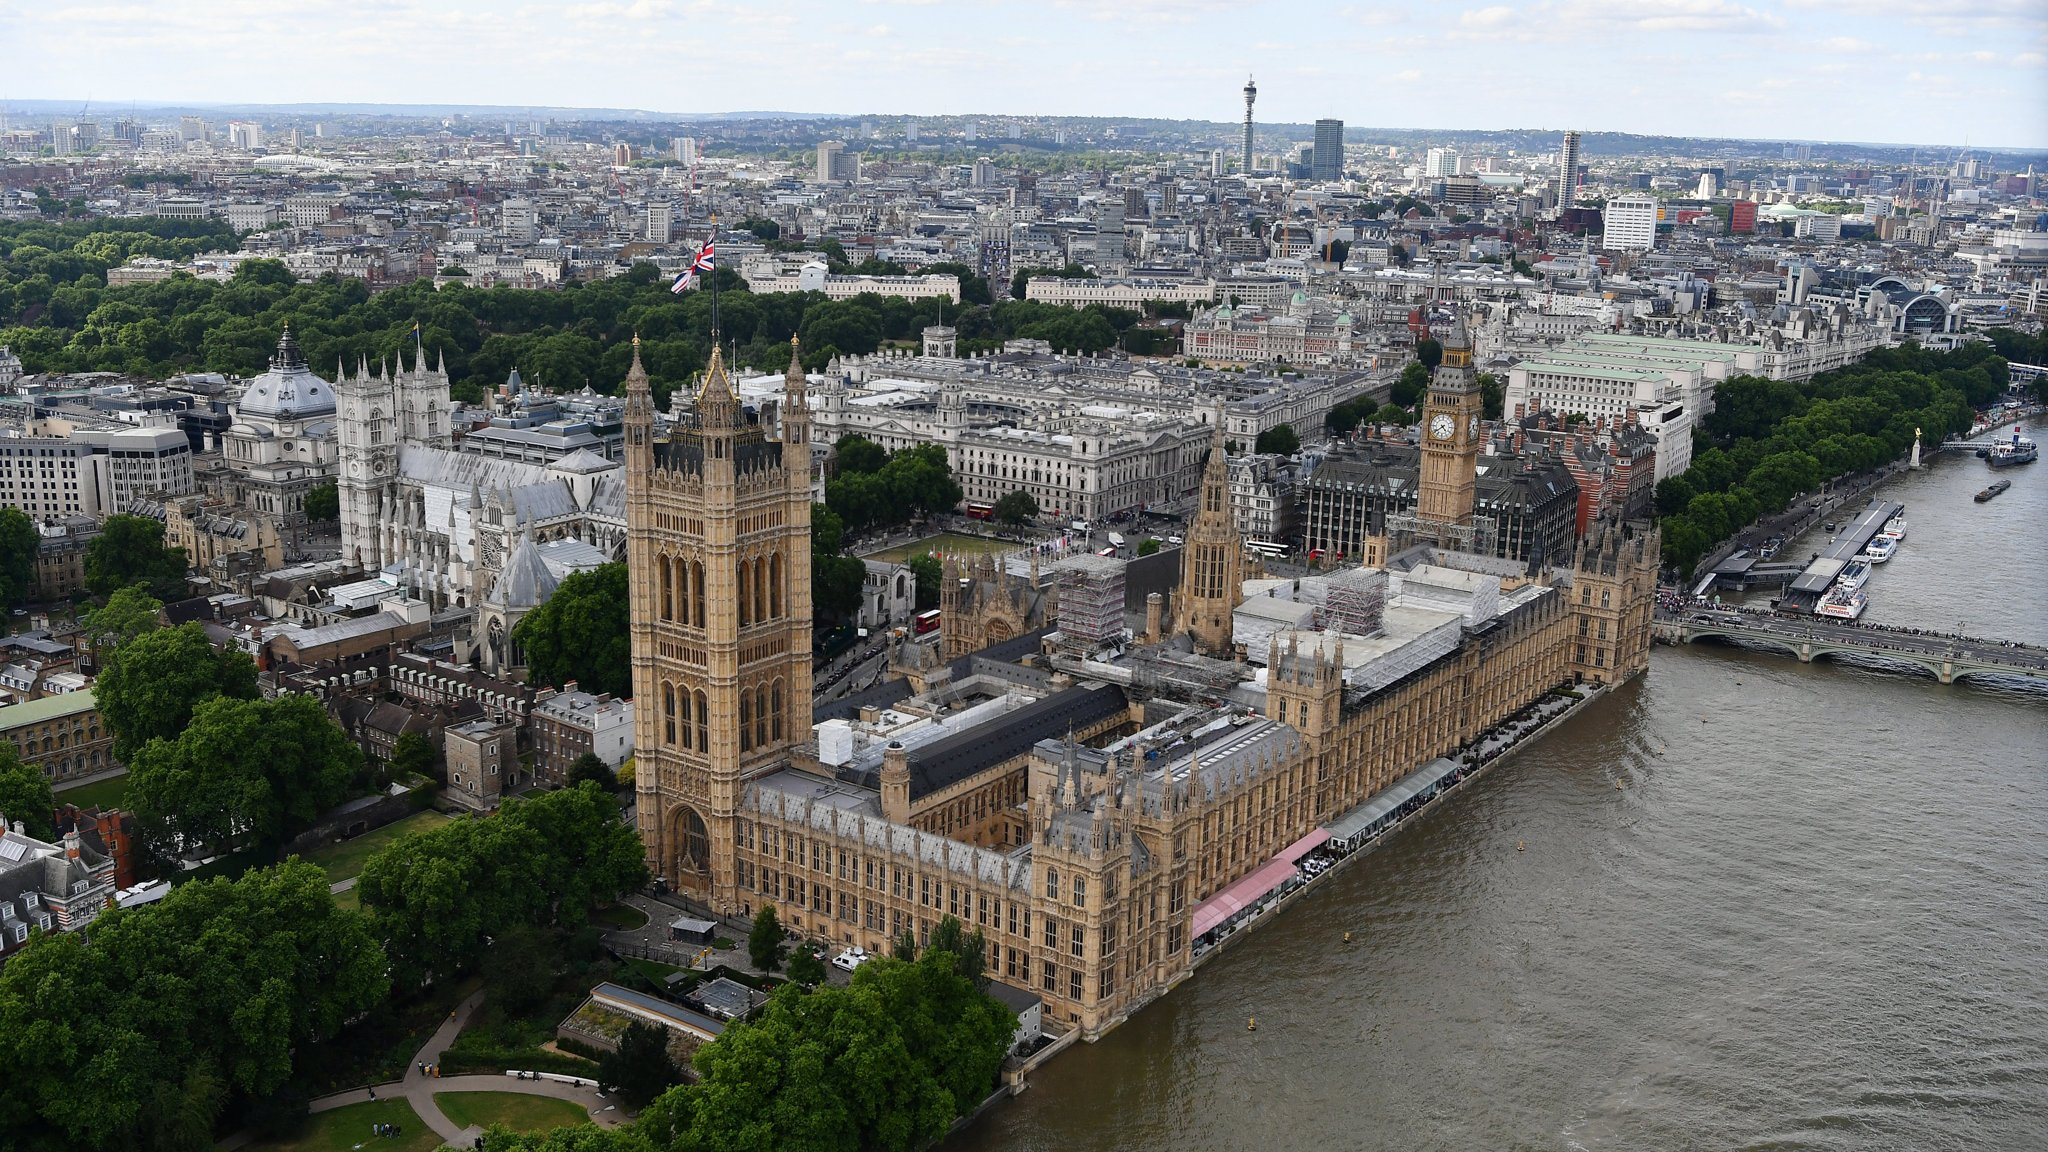 MPs call for 'mandatory disclosure' of pensions charges